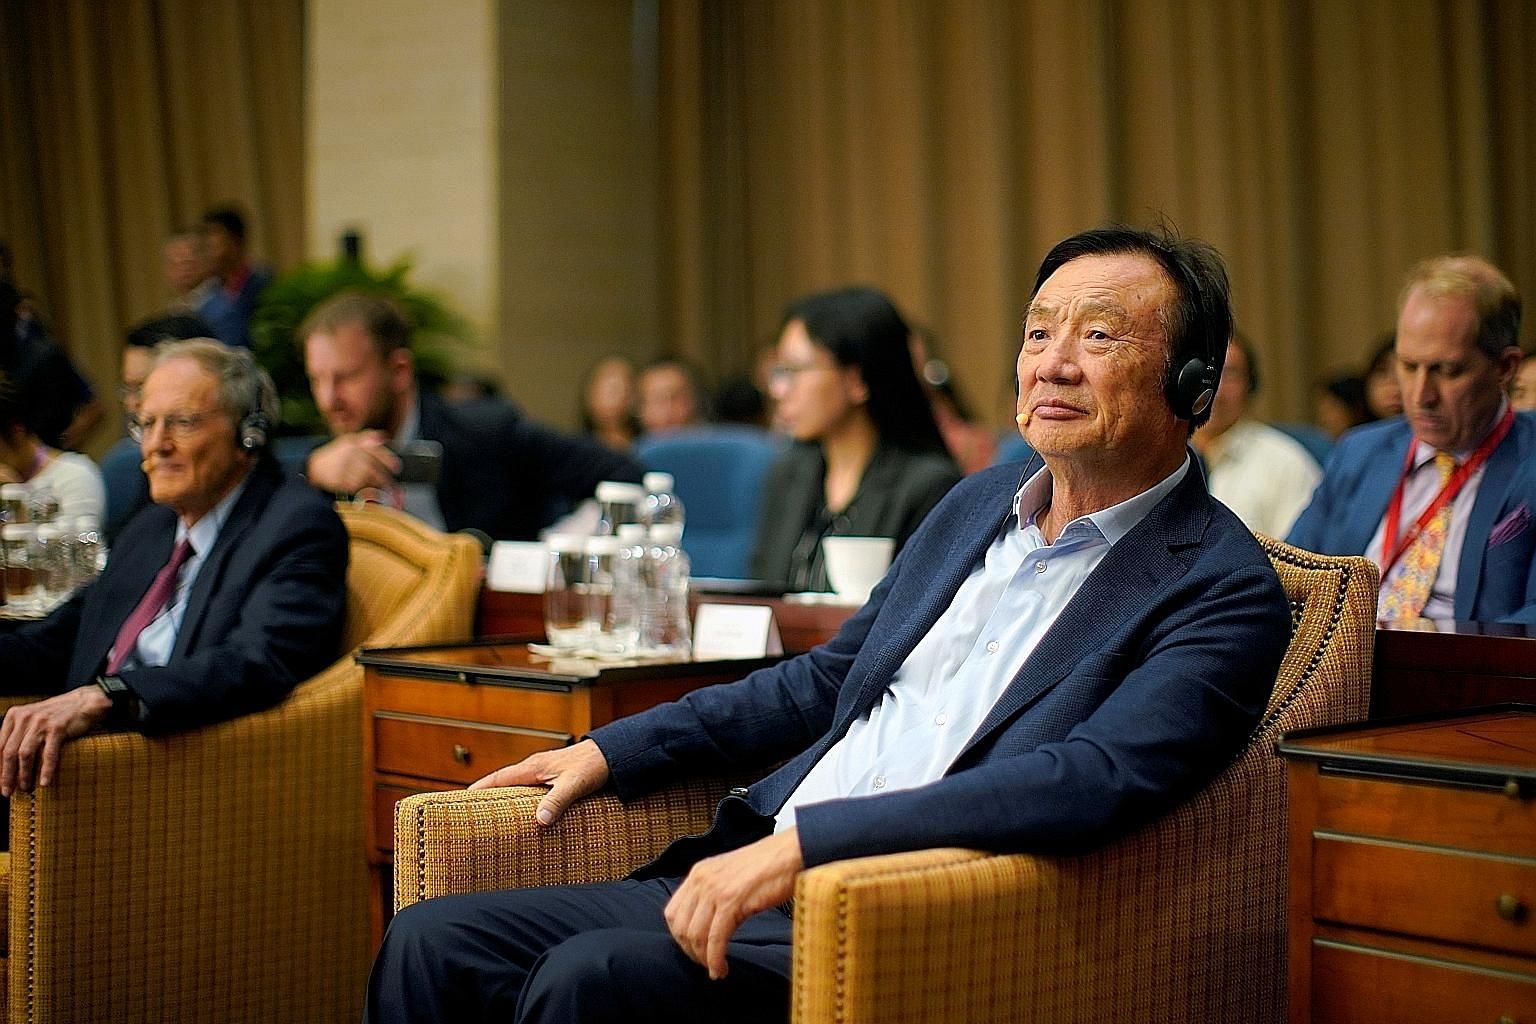 Since Huawei's troubles started last year, its once media-shy founder, Mr Ren Zhengfei, has spoken up for the beleaguered company at a panel discussion series started in June for business partners and journalists at its headquarters.